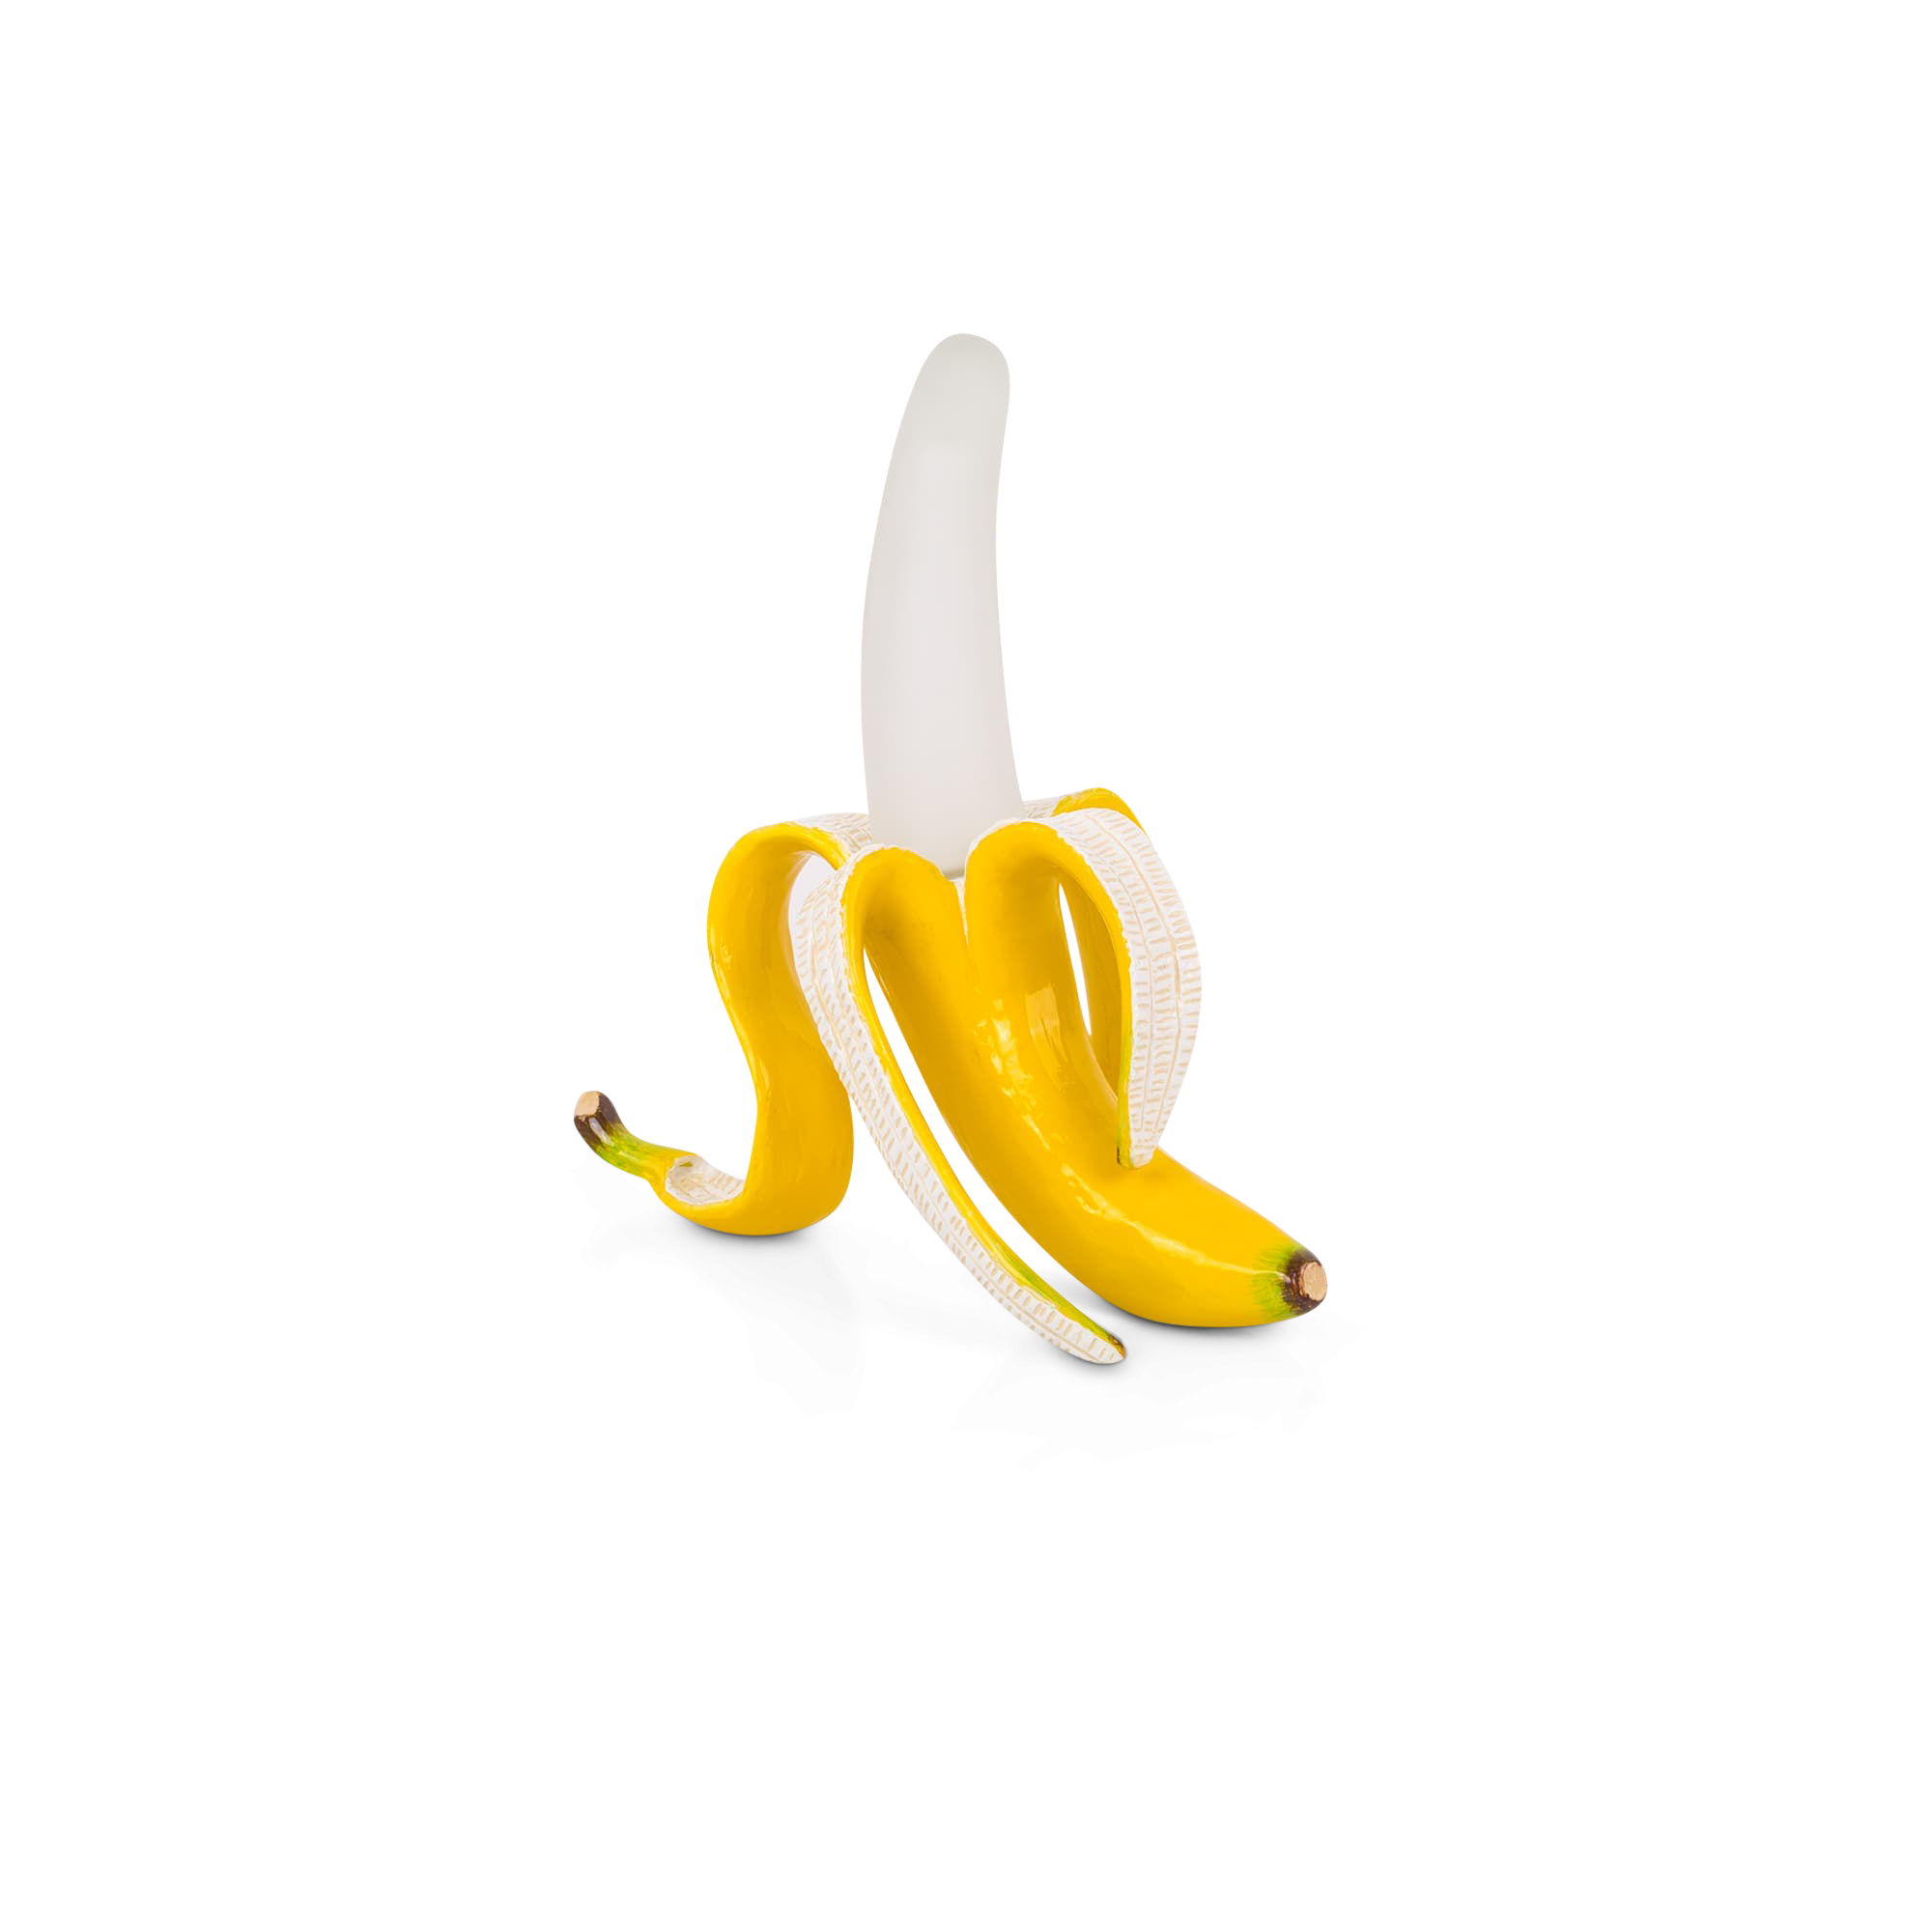 banana-lamp-daisy-1